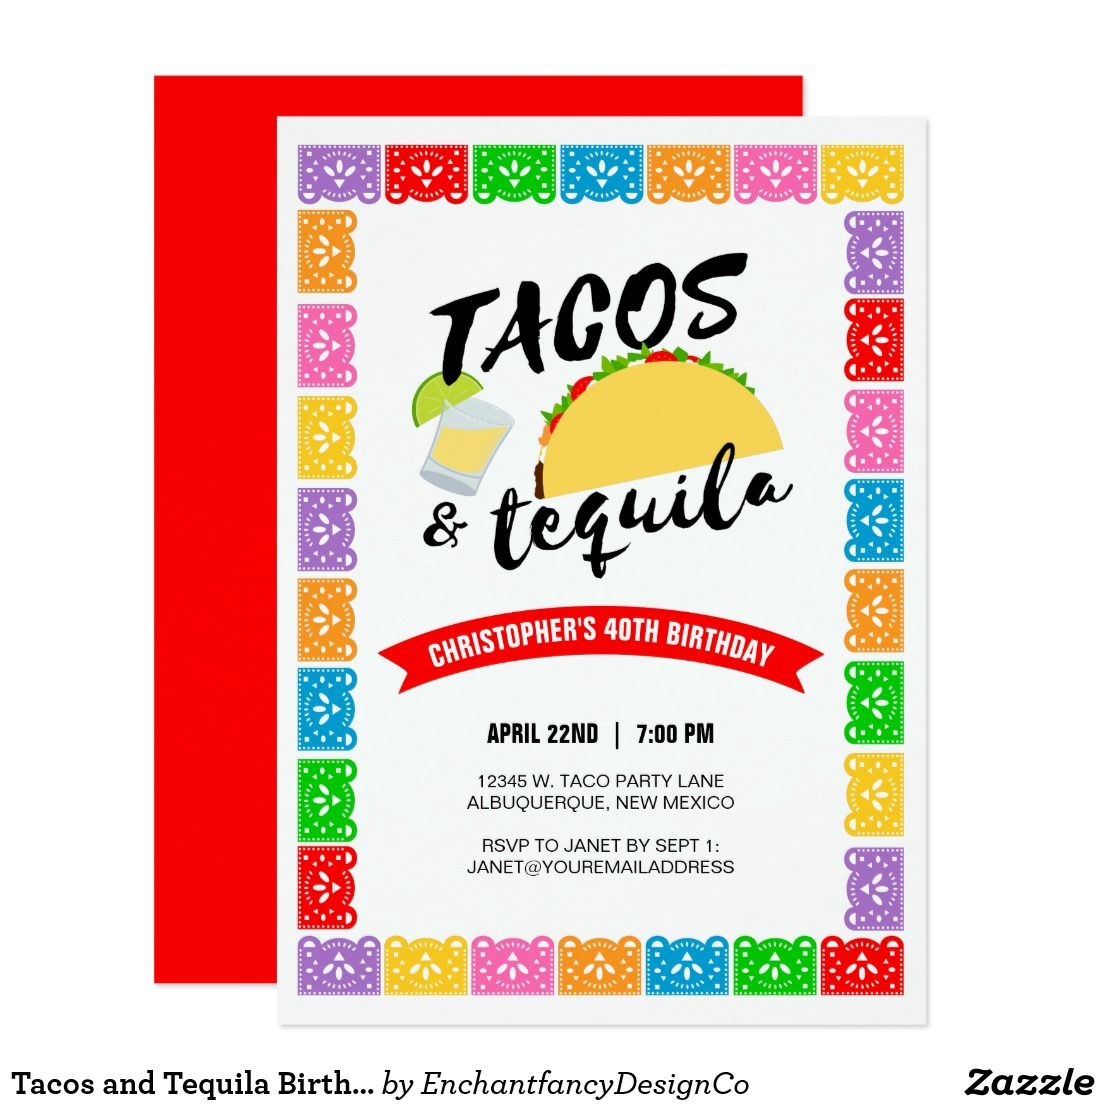 Tacos and Tequila Birthday Party Invitation | Taco Party Ideas ...